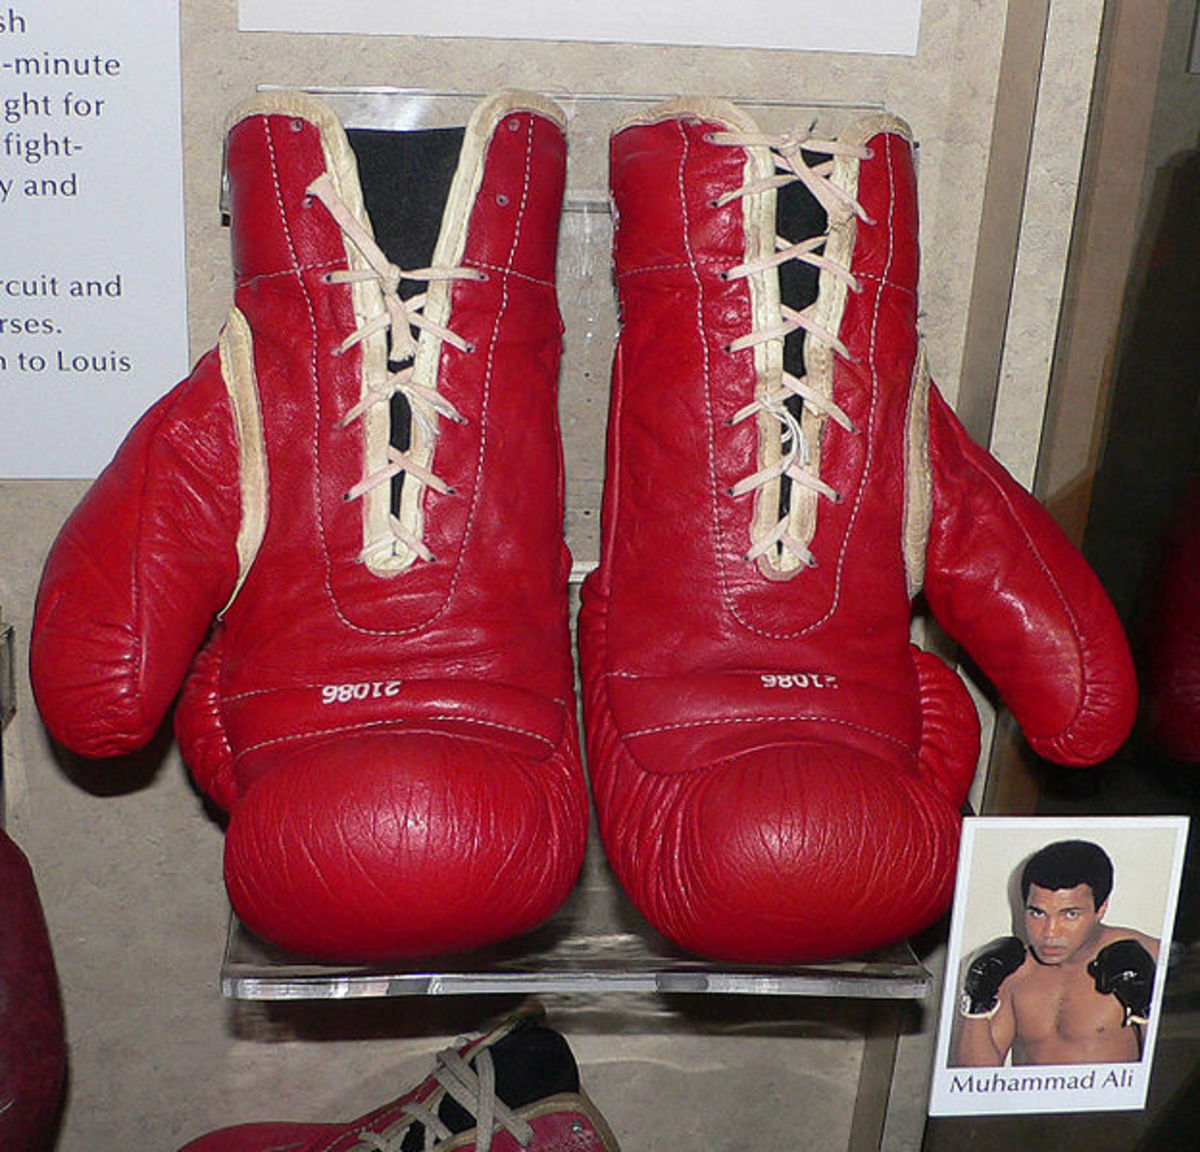 arguments for and against banning boxing howtheyplay muhammad ali s boxing gloves ali is perhaps the most famous and charismatic boxer ever